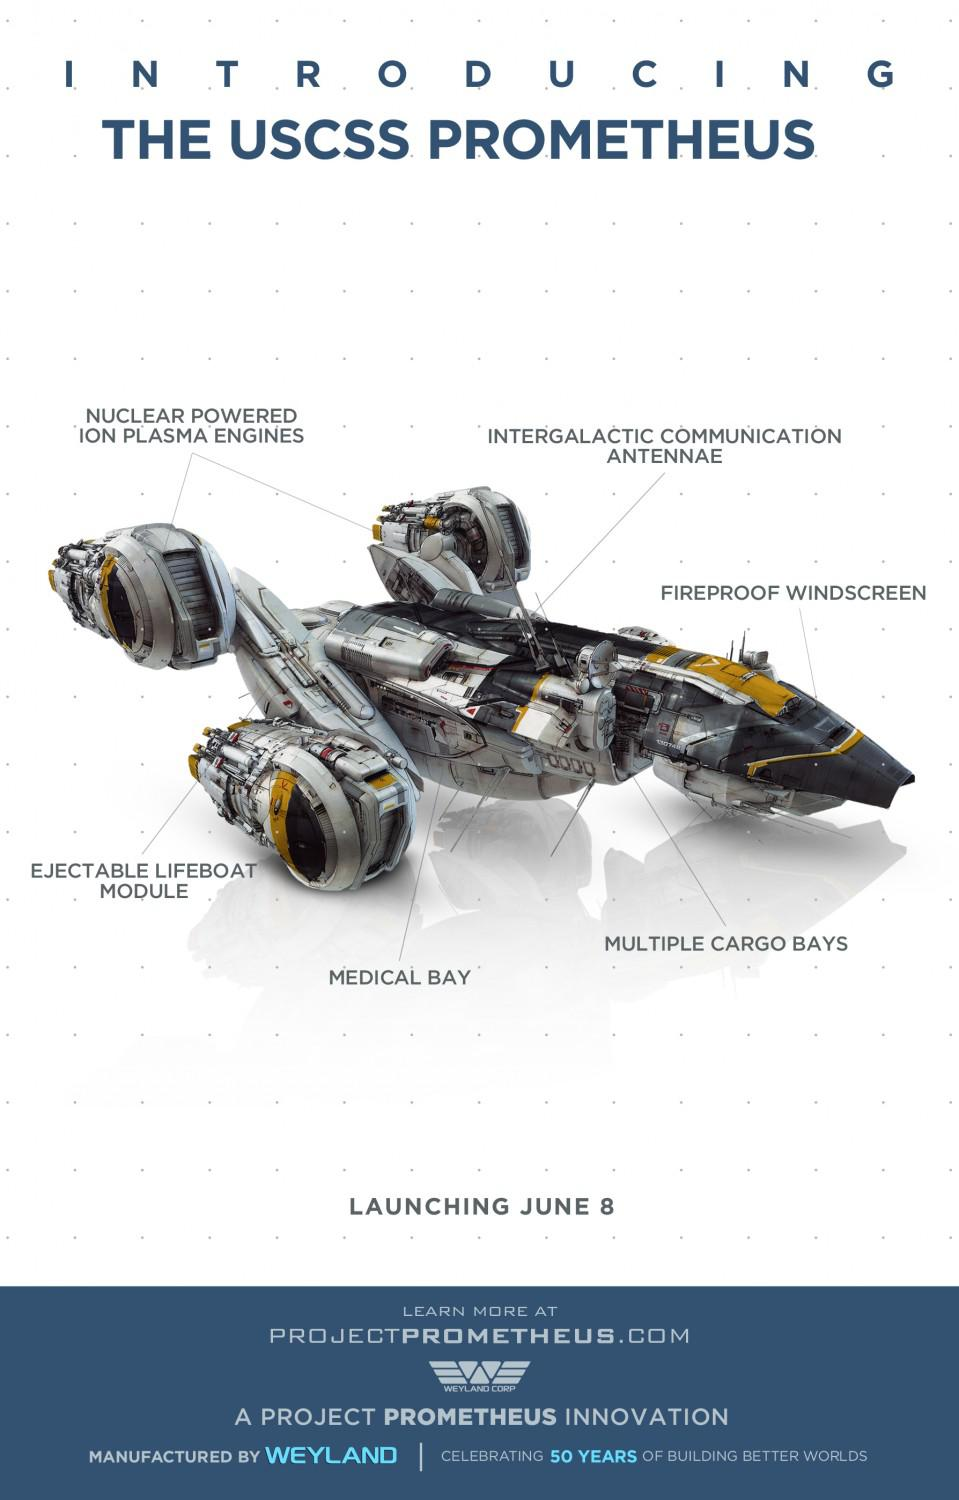 Prometheus - alien universe - film poster - introducing the USCSS ion plasma engines - flyer